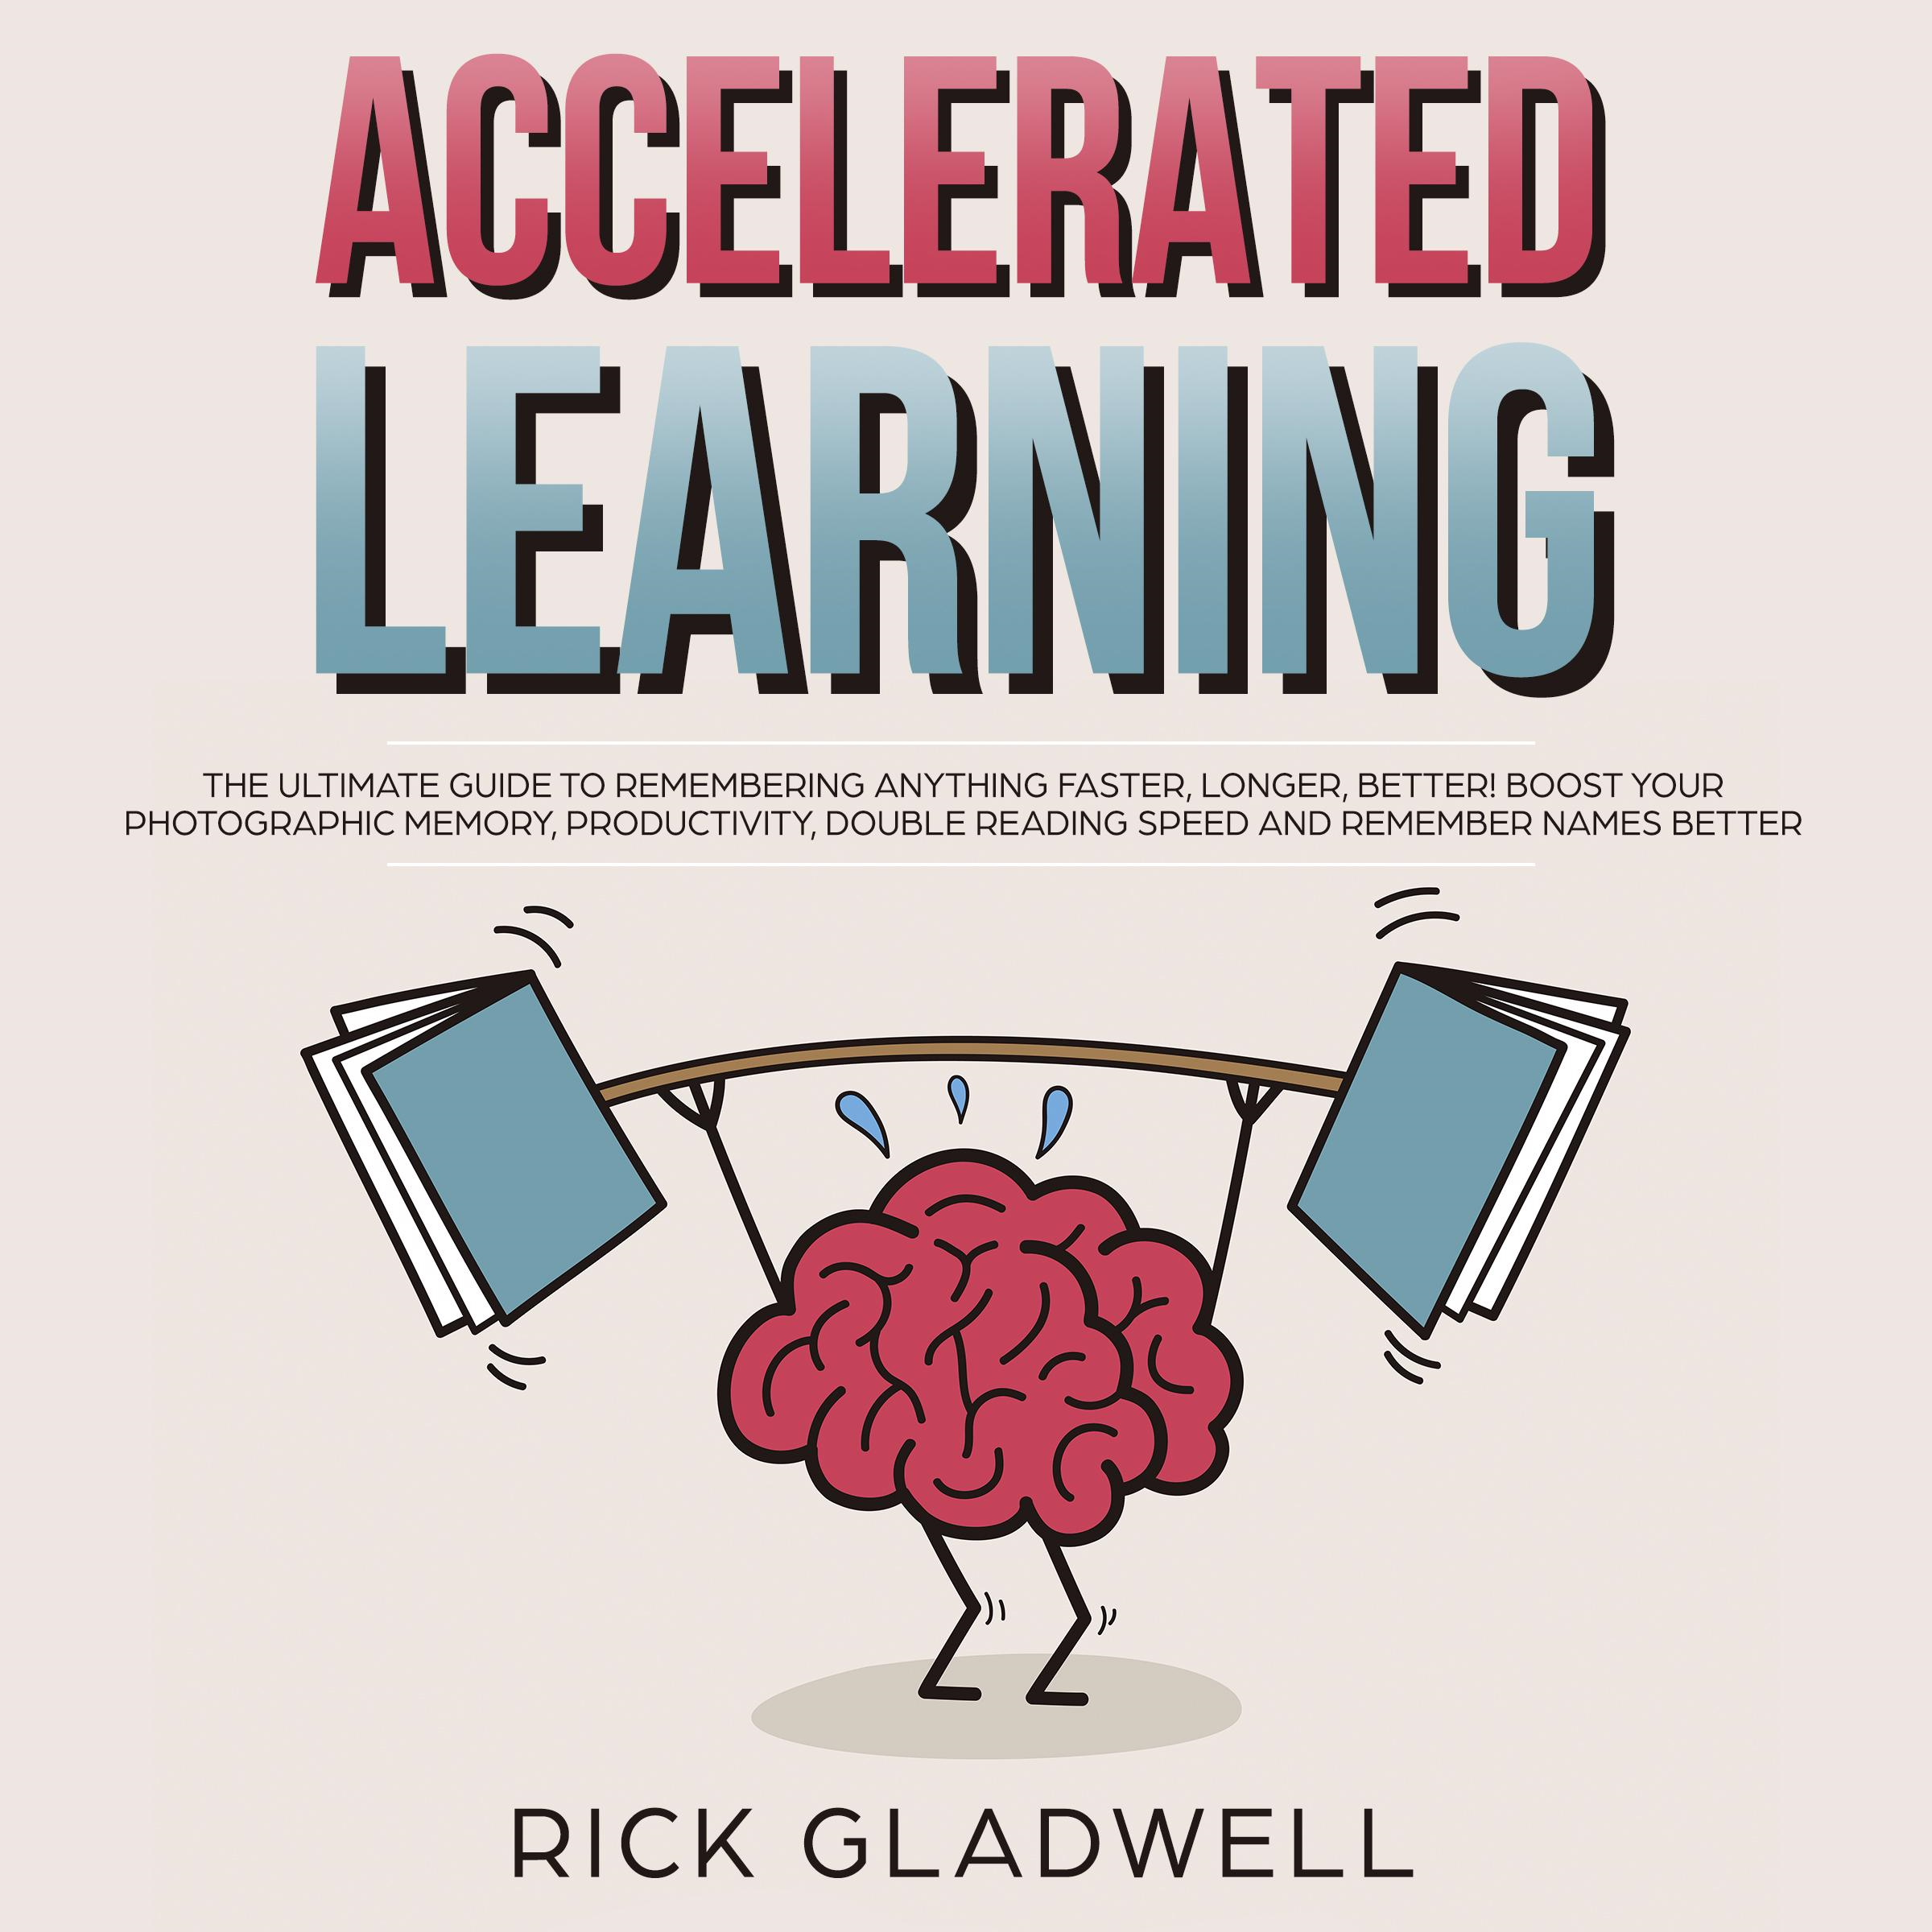 Accelerated Learning: The Ultimate Guide to Remembering Anything Faster, Longer, Better! Boost Your Photographic Memory, Productivity, Double Reading Speed and Remember Names Better